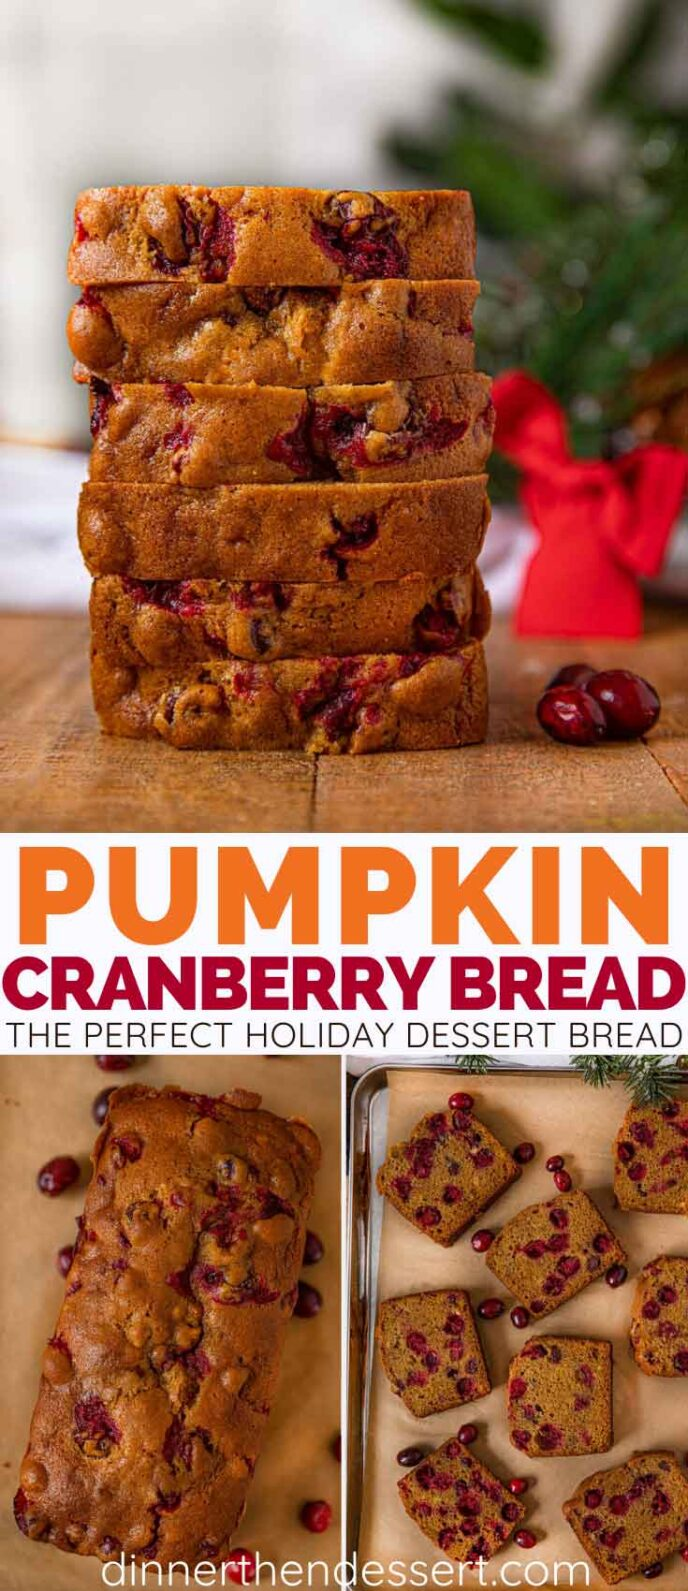 Pumpkin Cranberry Bread collage